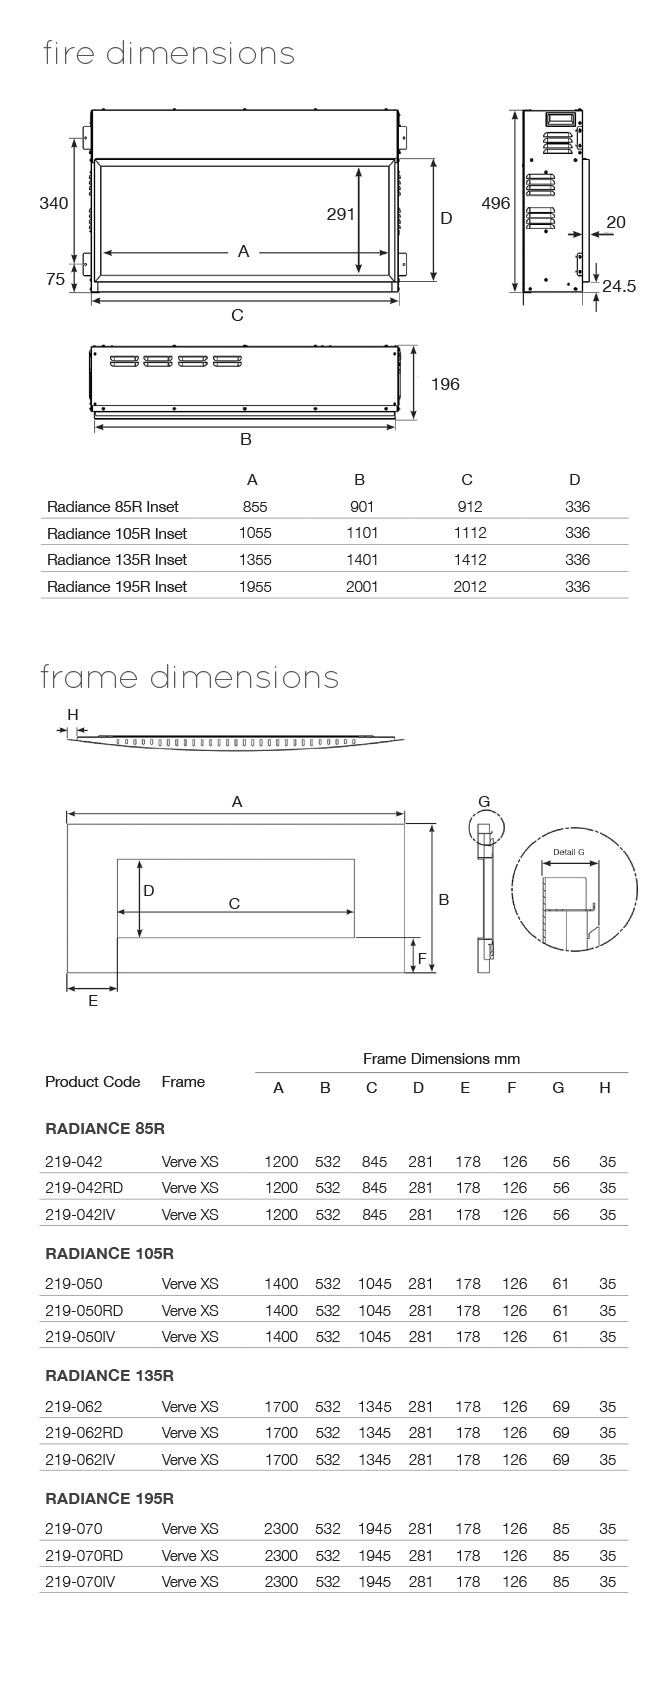 Radiance Inset Verve XS Dimensions